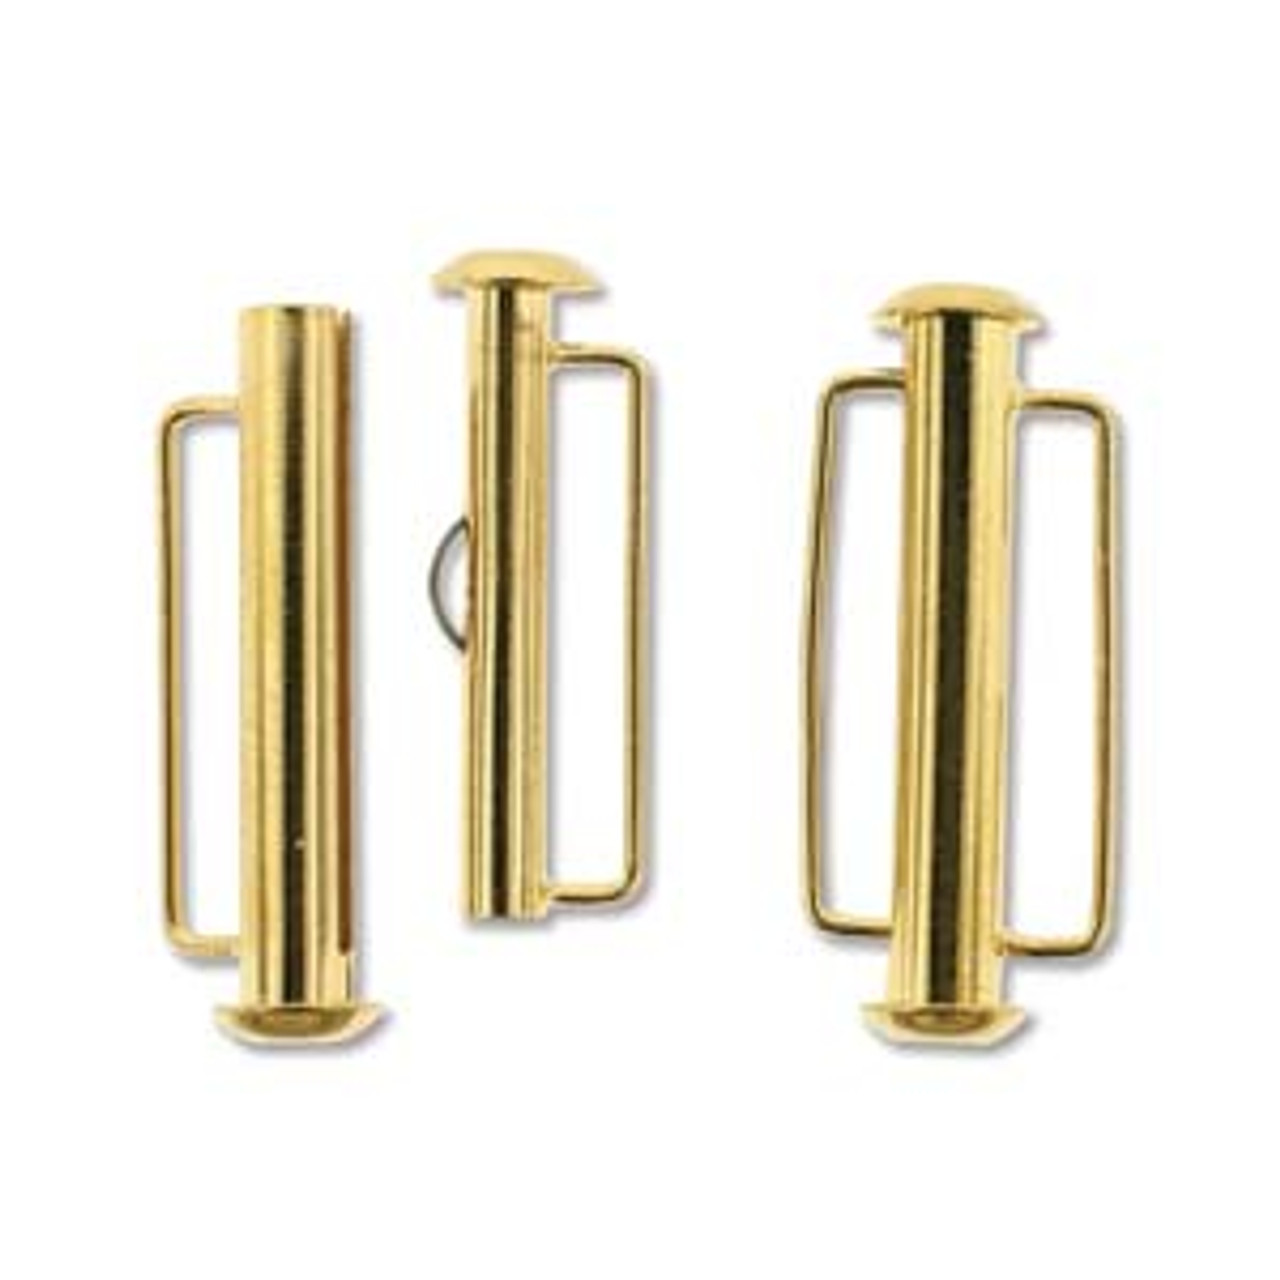 26.5mm Gold Plated Slide Bar Clasp  (1 Piece)